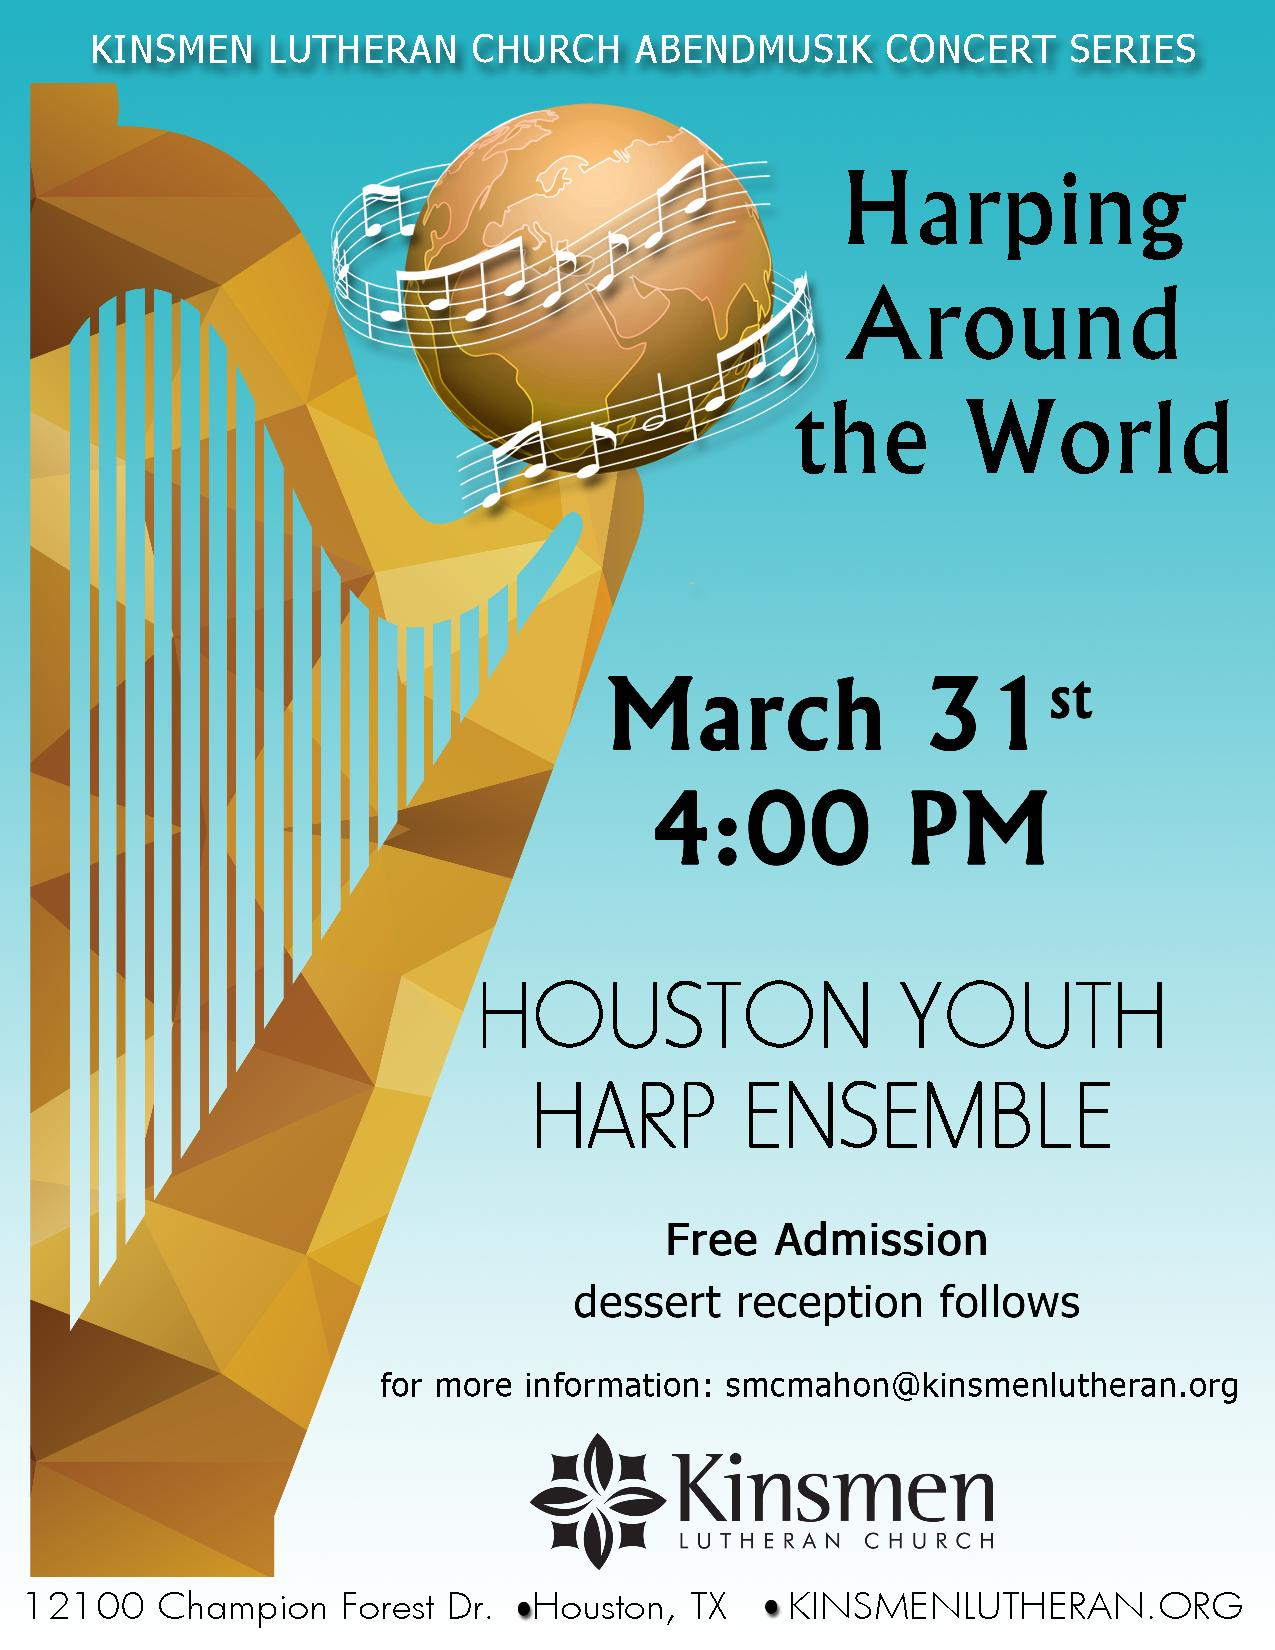 Houston Youth Harp Ensemble: Harping Around the World